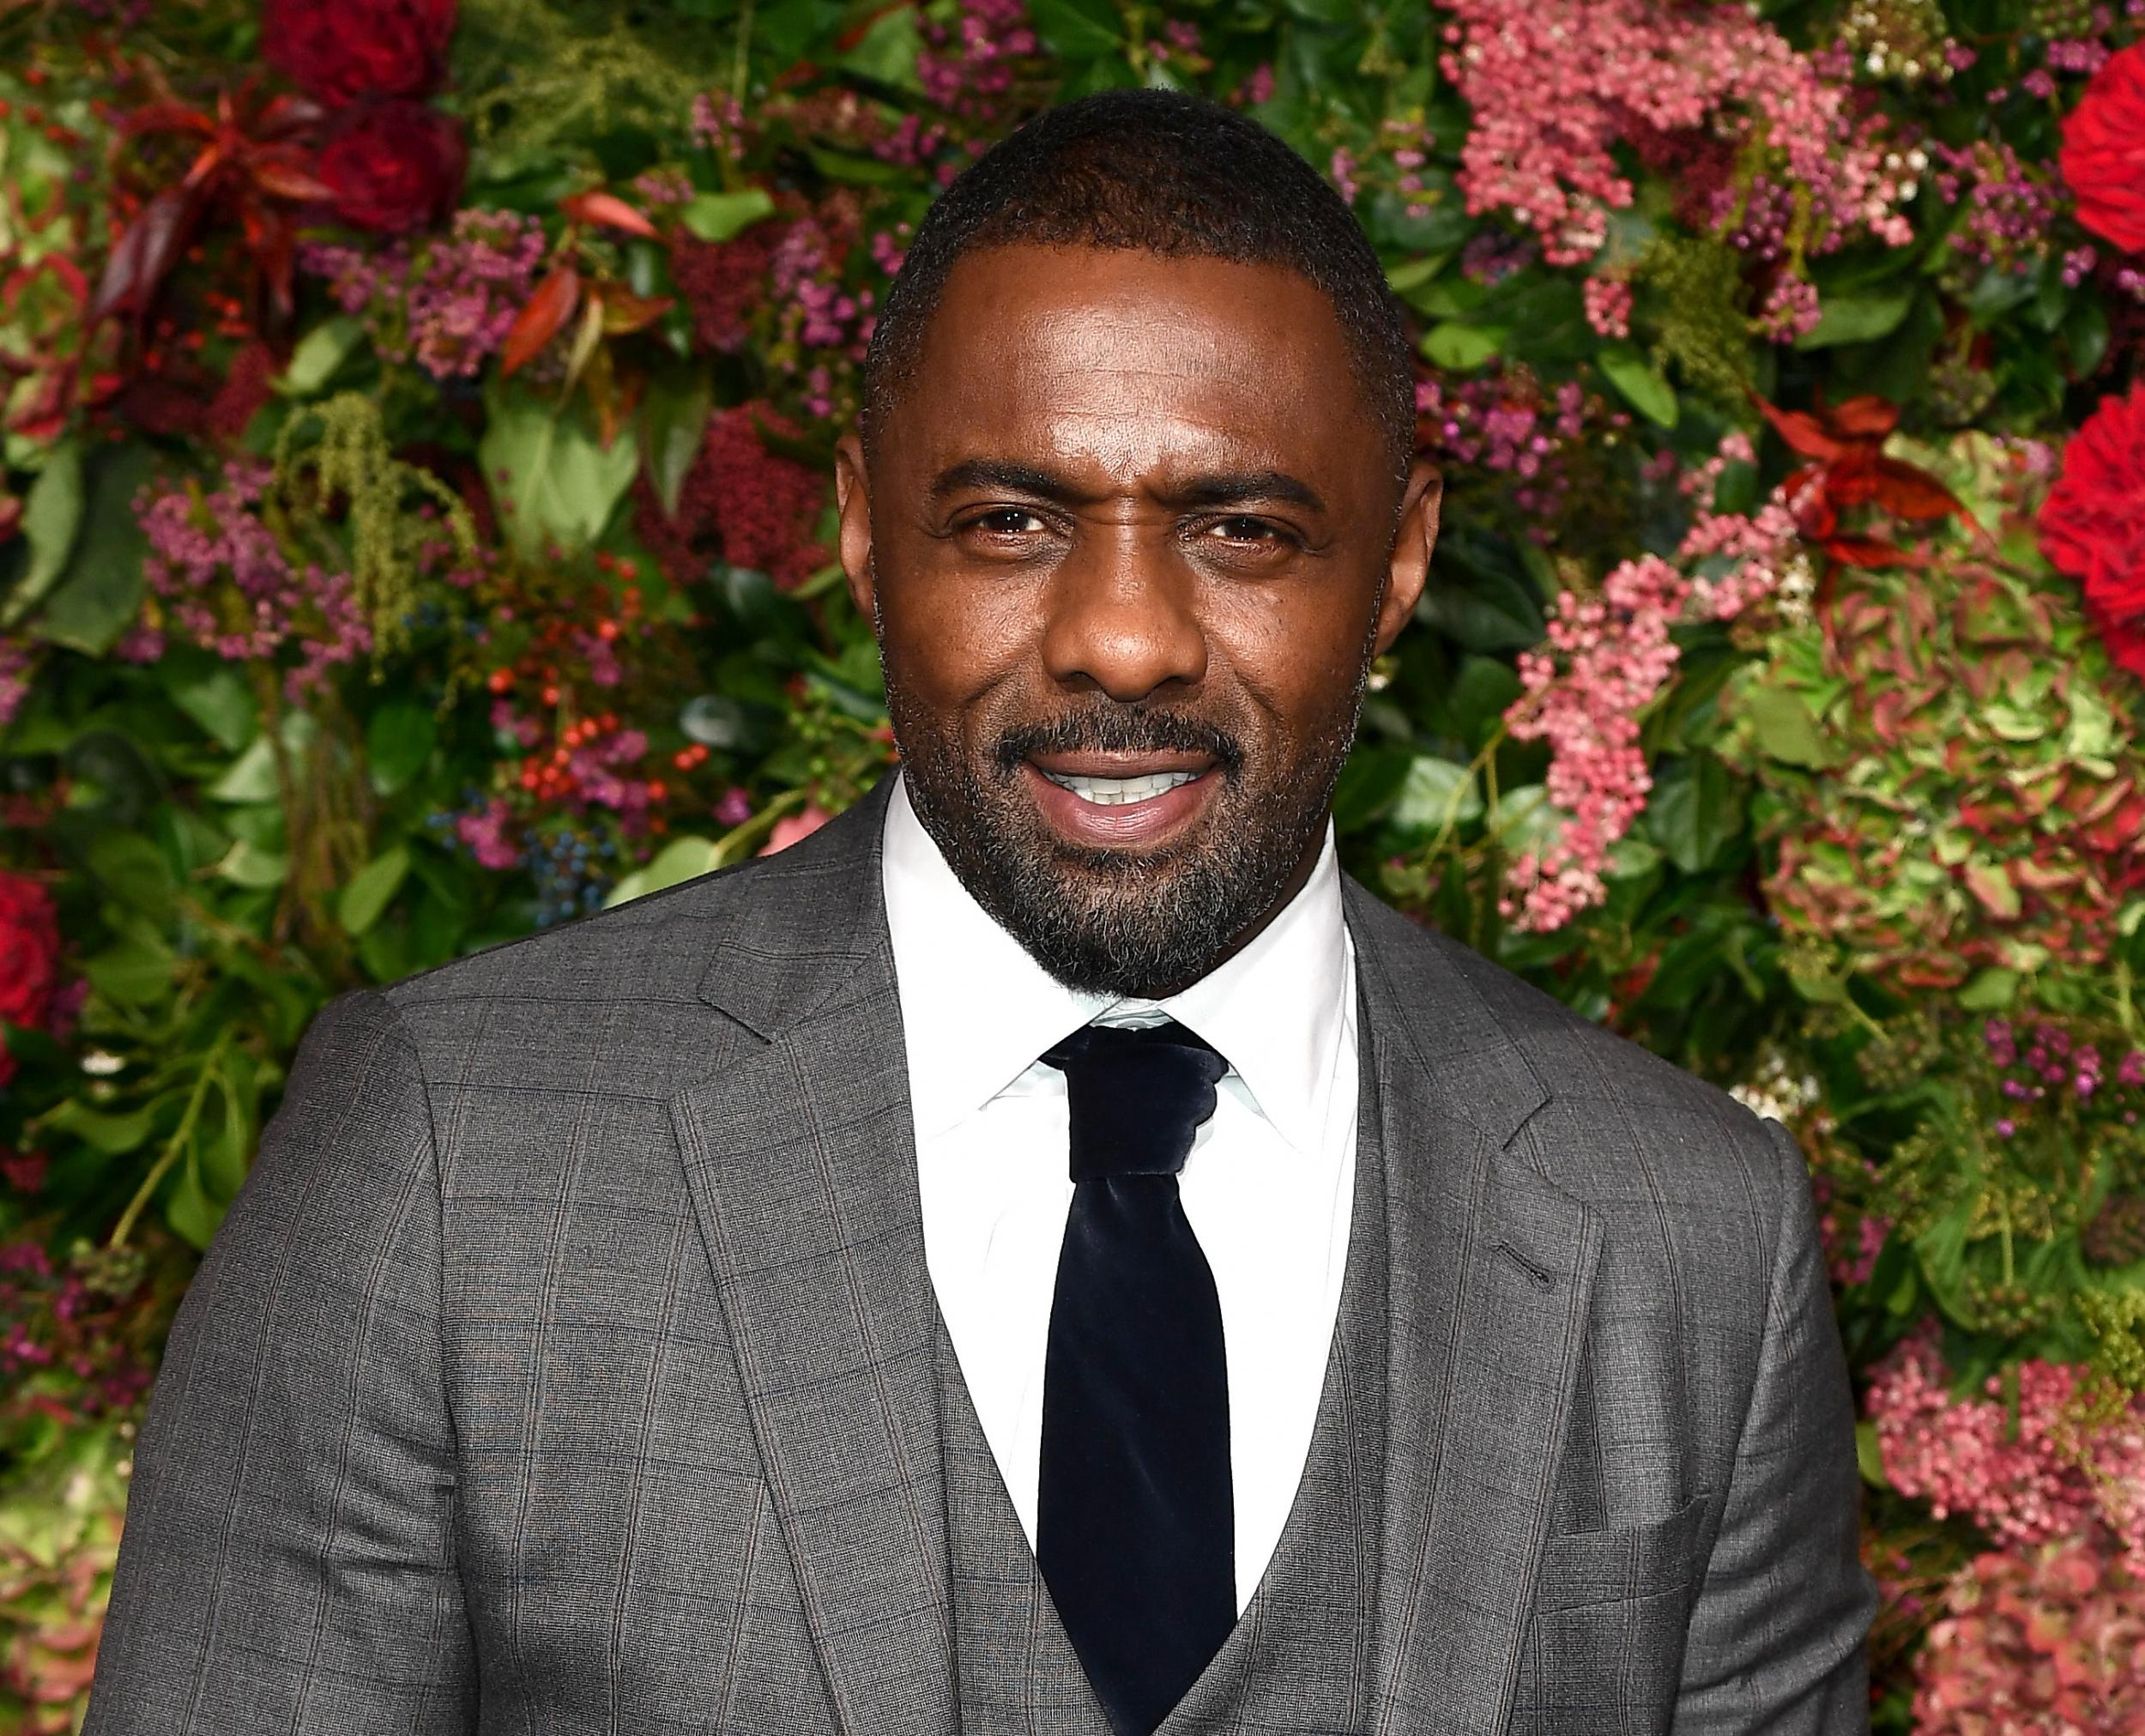 Idris Elba calls for better UK film diversity in moving essay